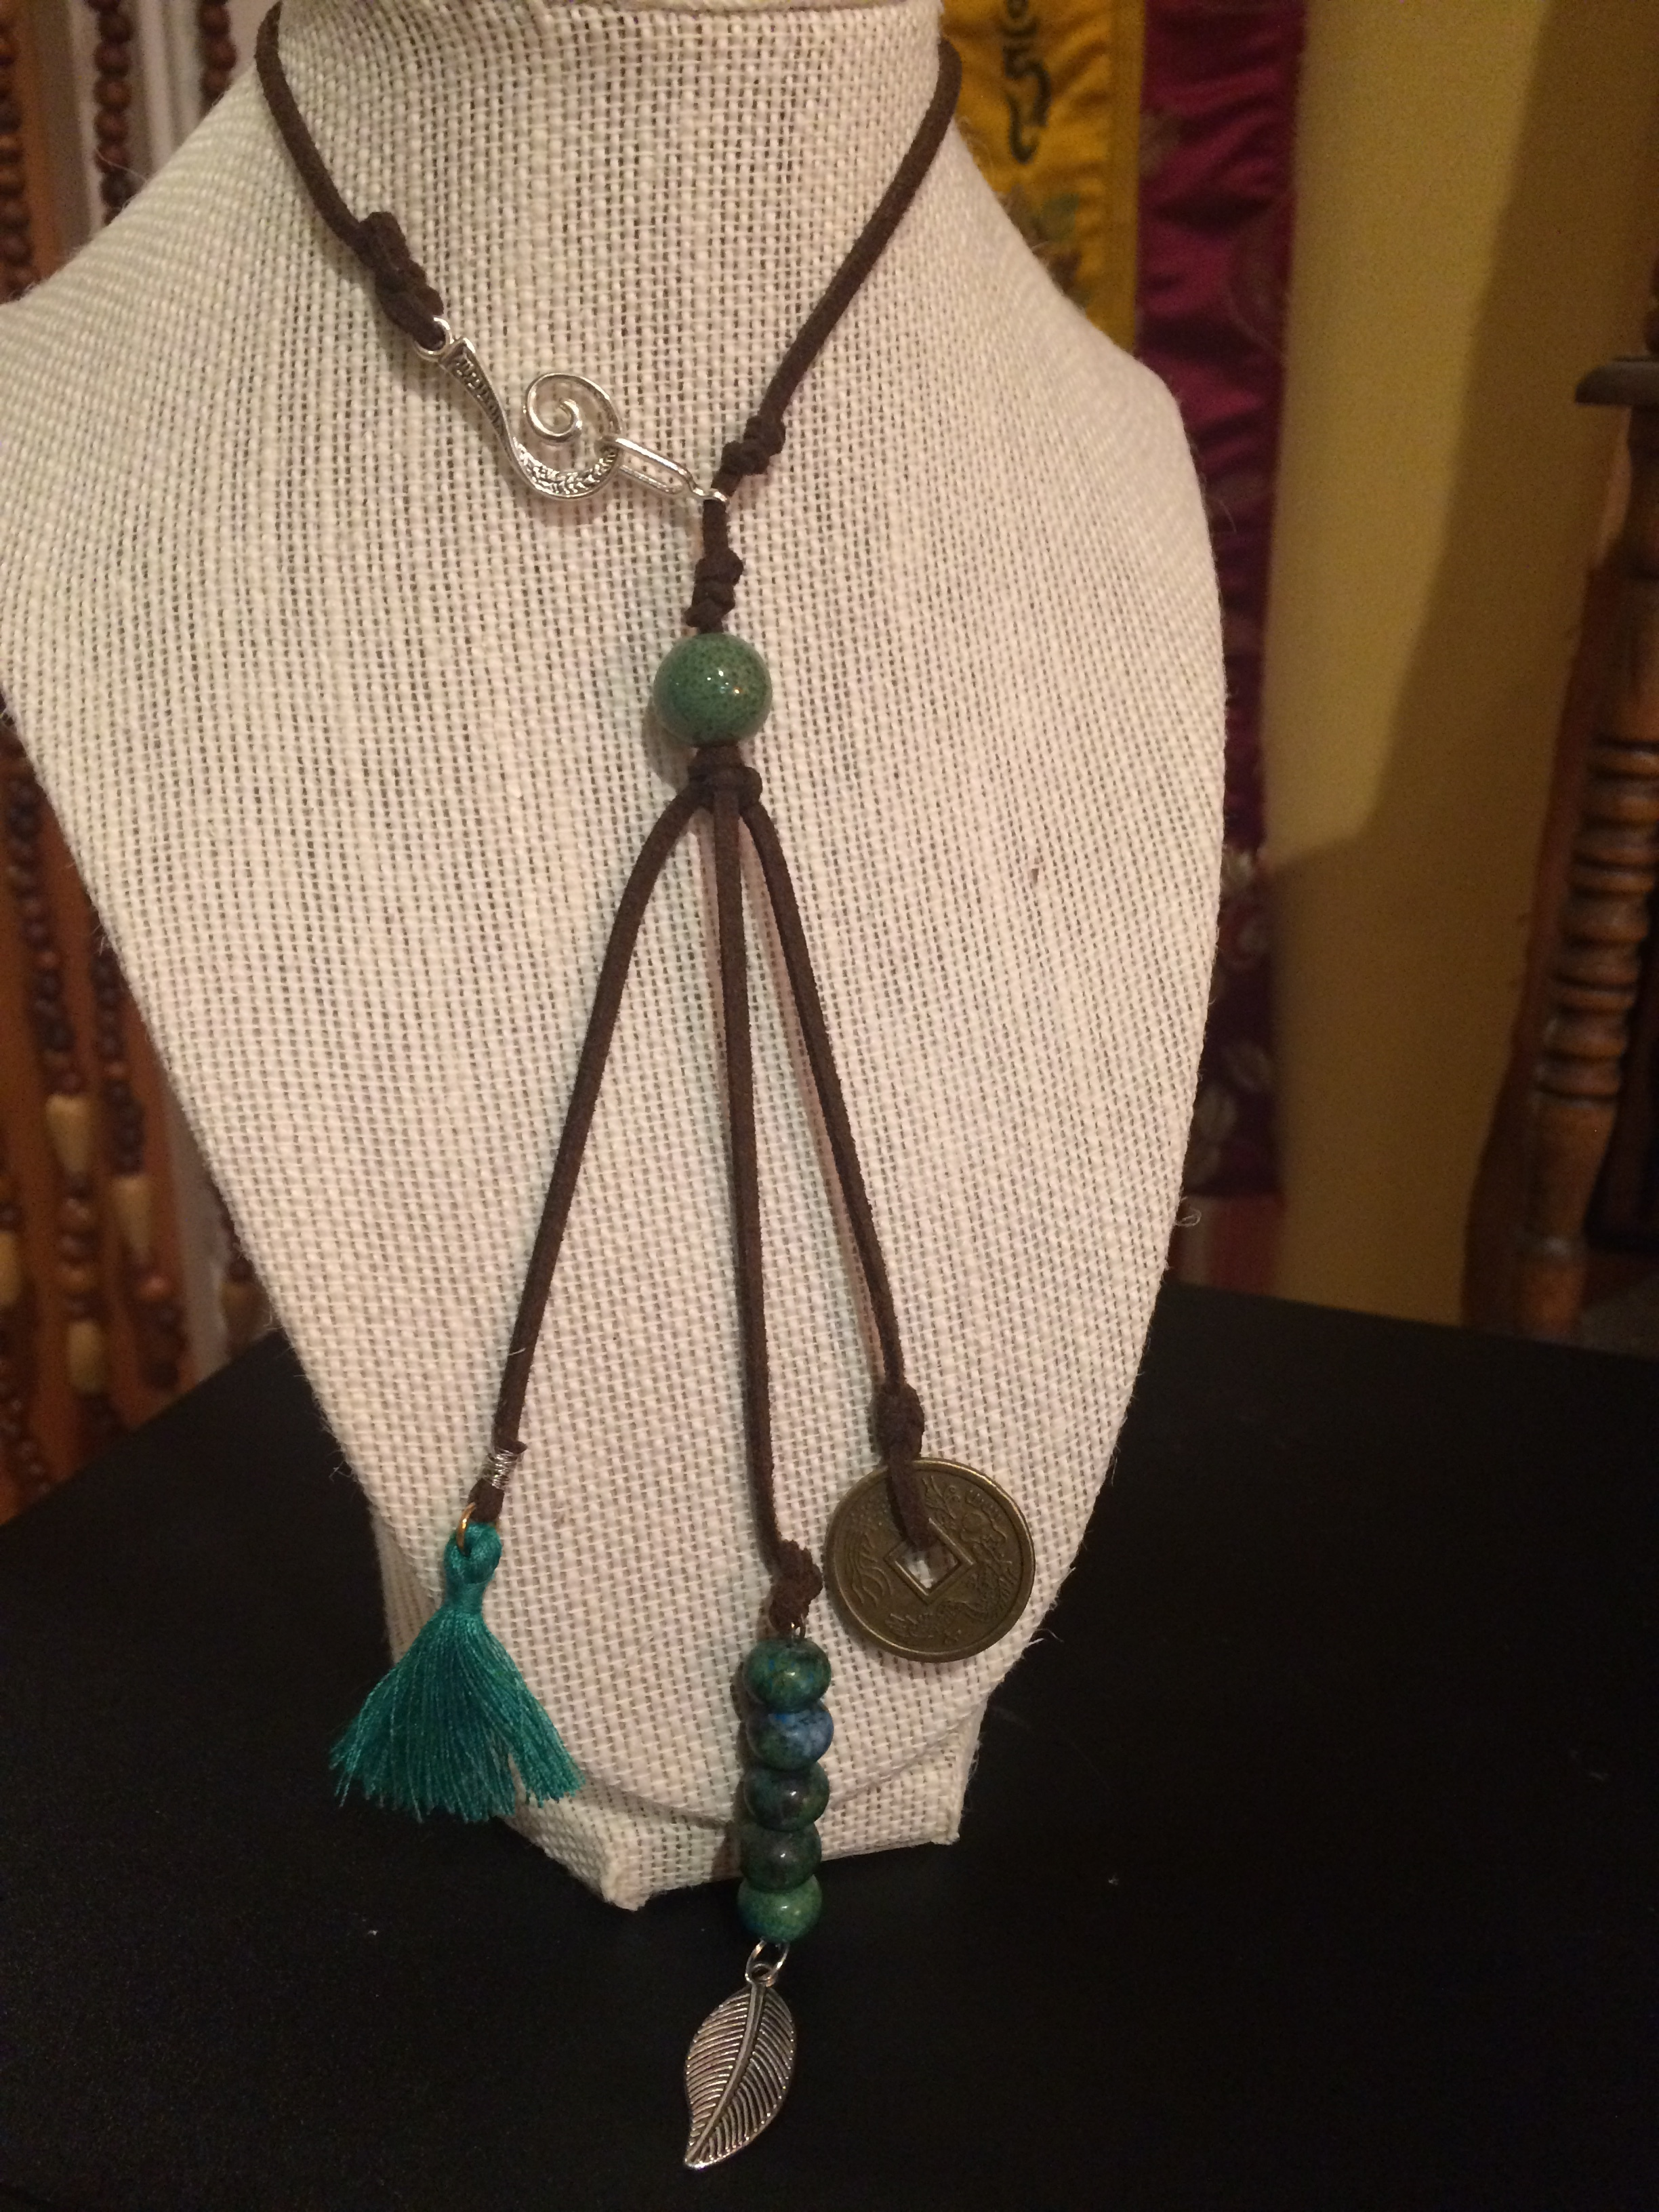 Front-Clasp Leather Necklace with Green Ceramic Bead, Green River Jasper Beads, and Brushed Gold and Silver Charms: #14